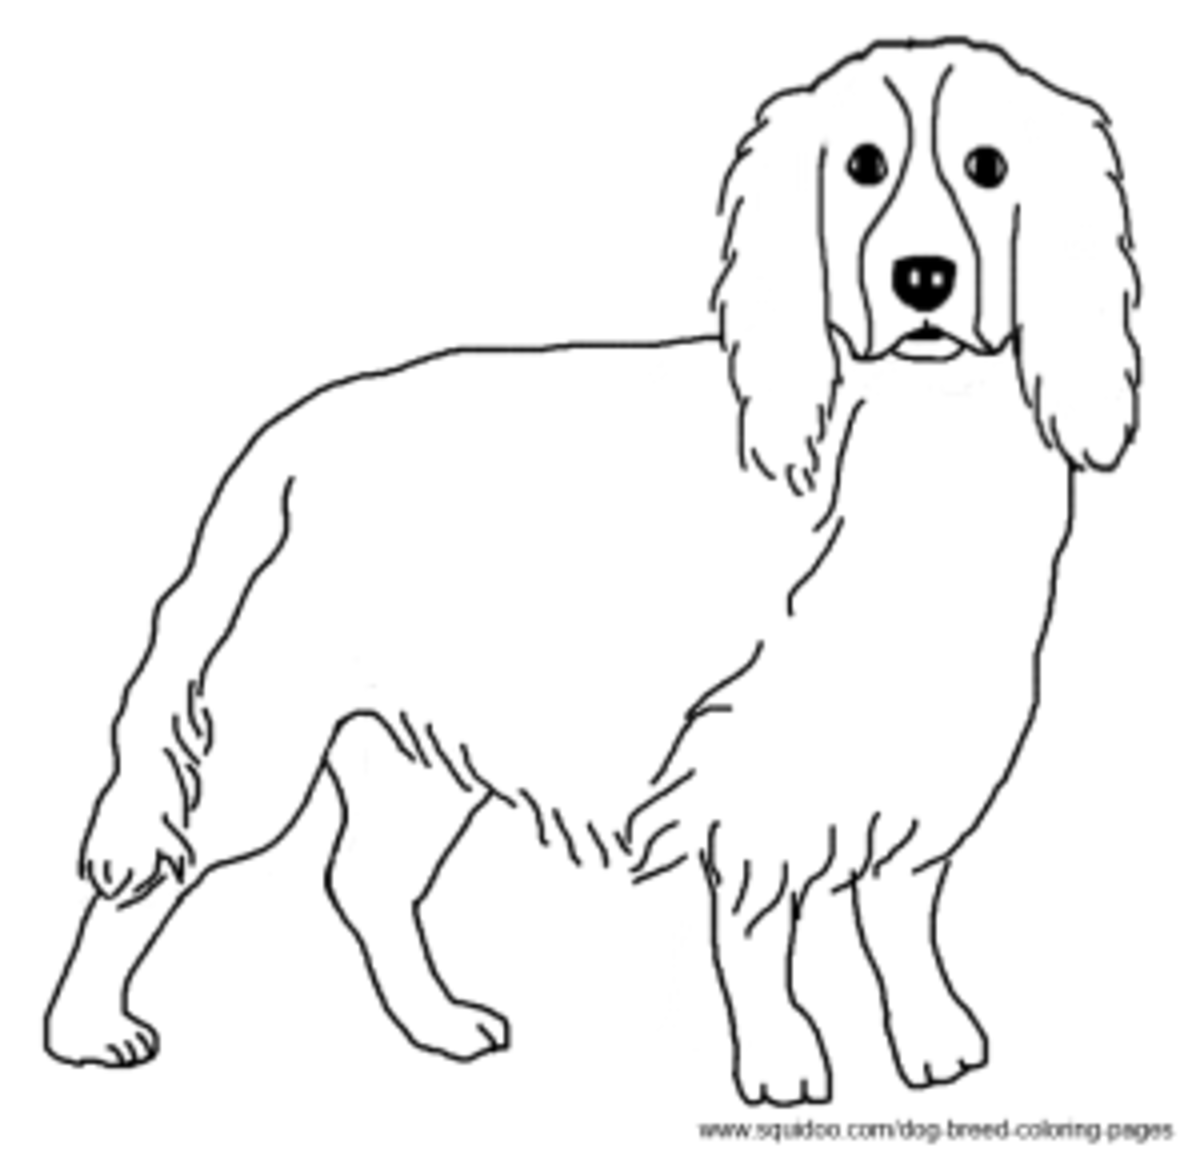 childrens coloring pages springer spaniel | Dog Breed Coloring Pages | HubPages